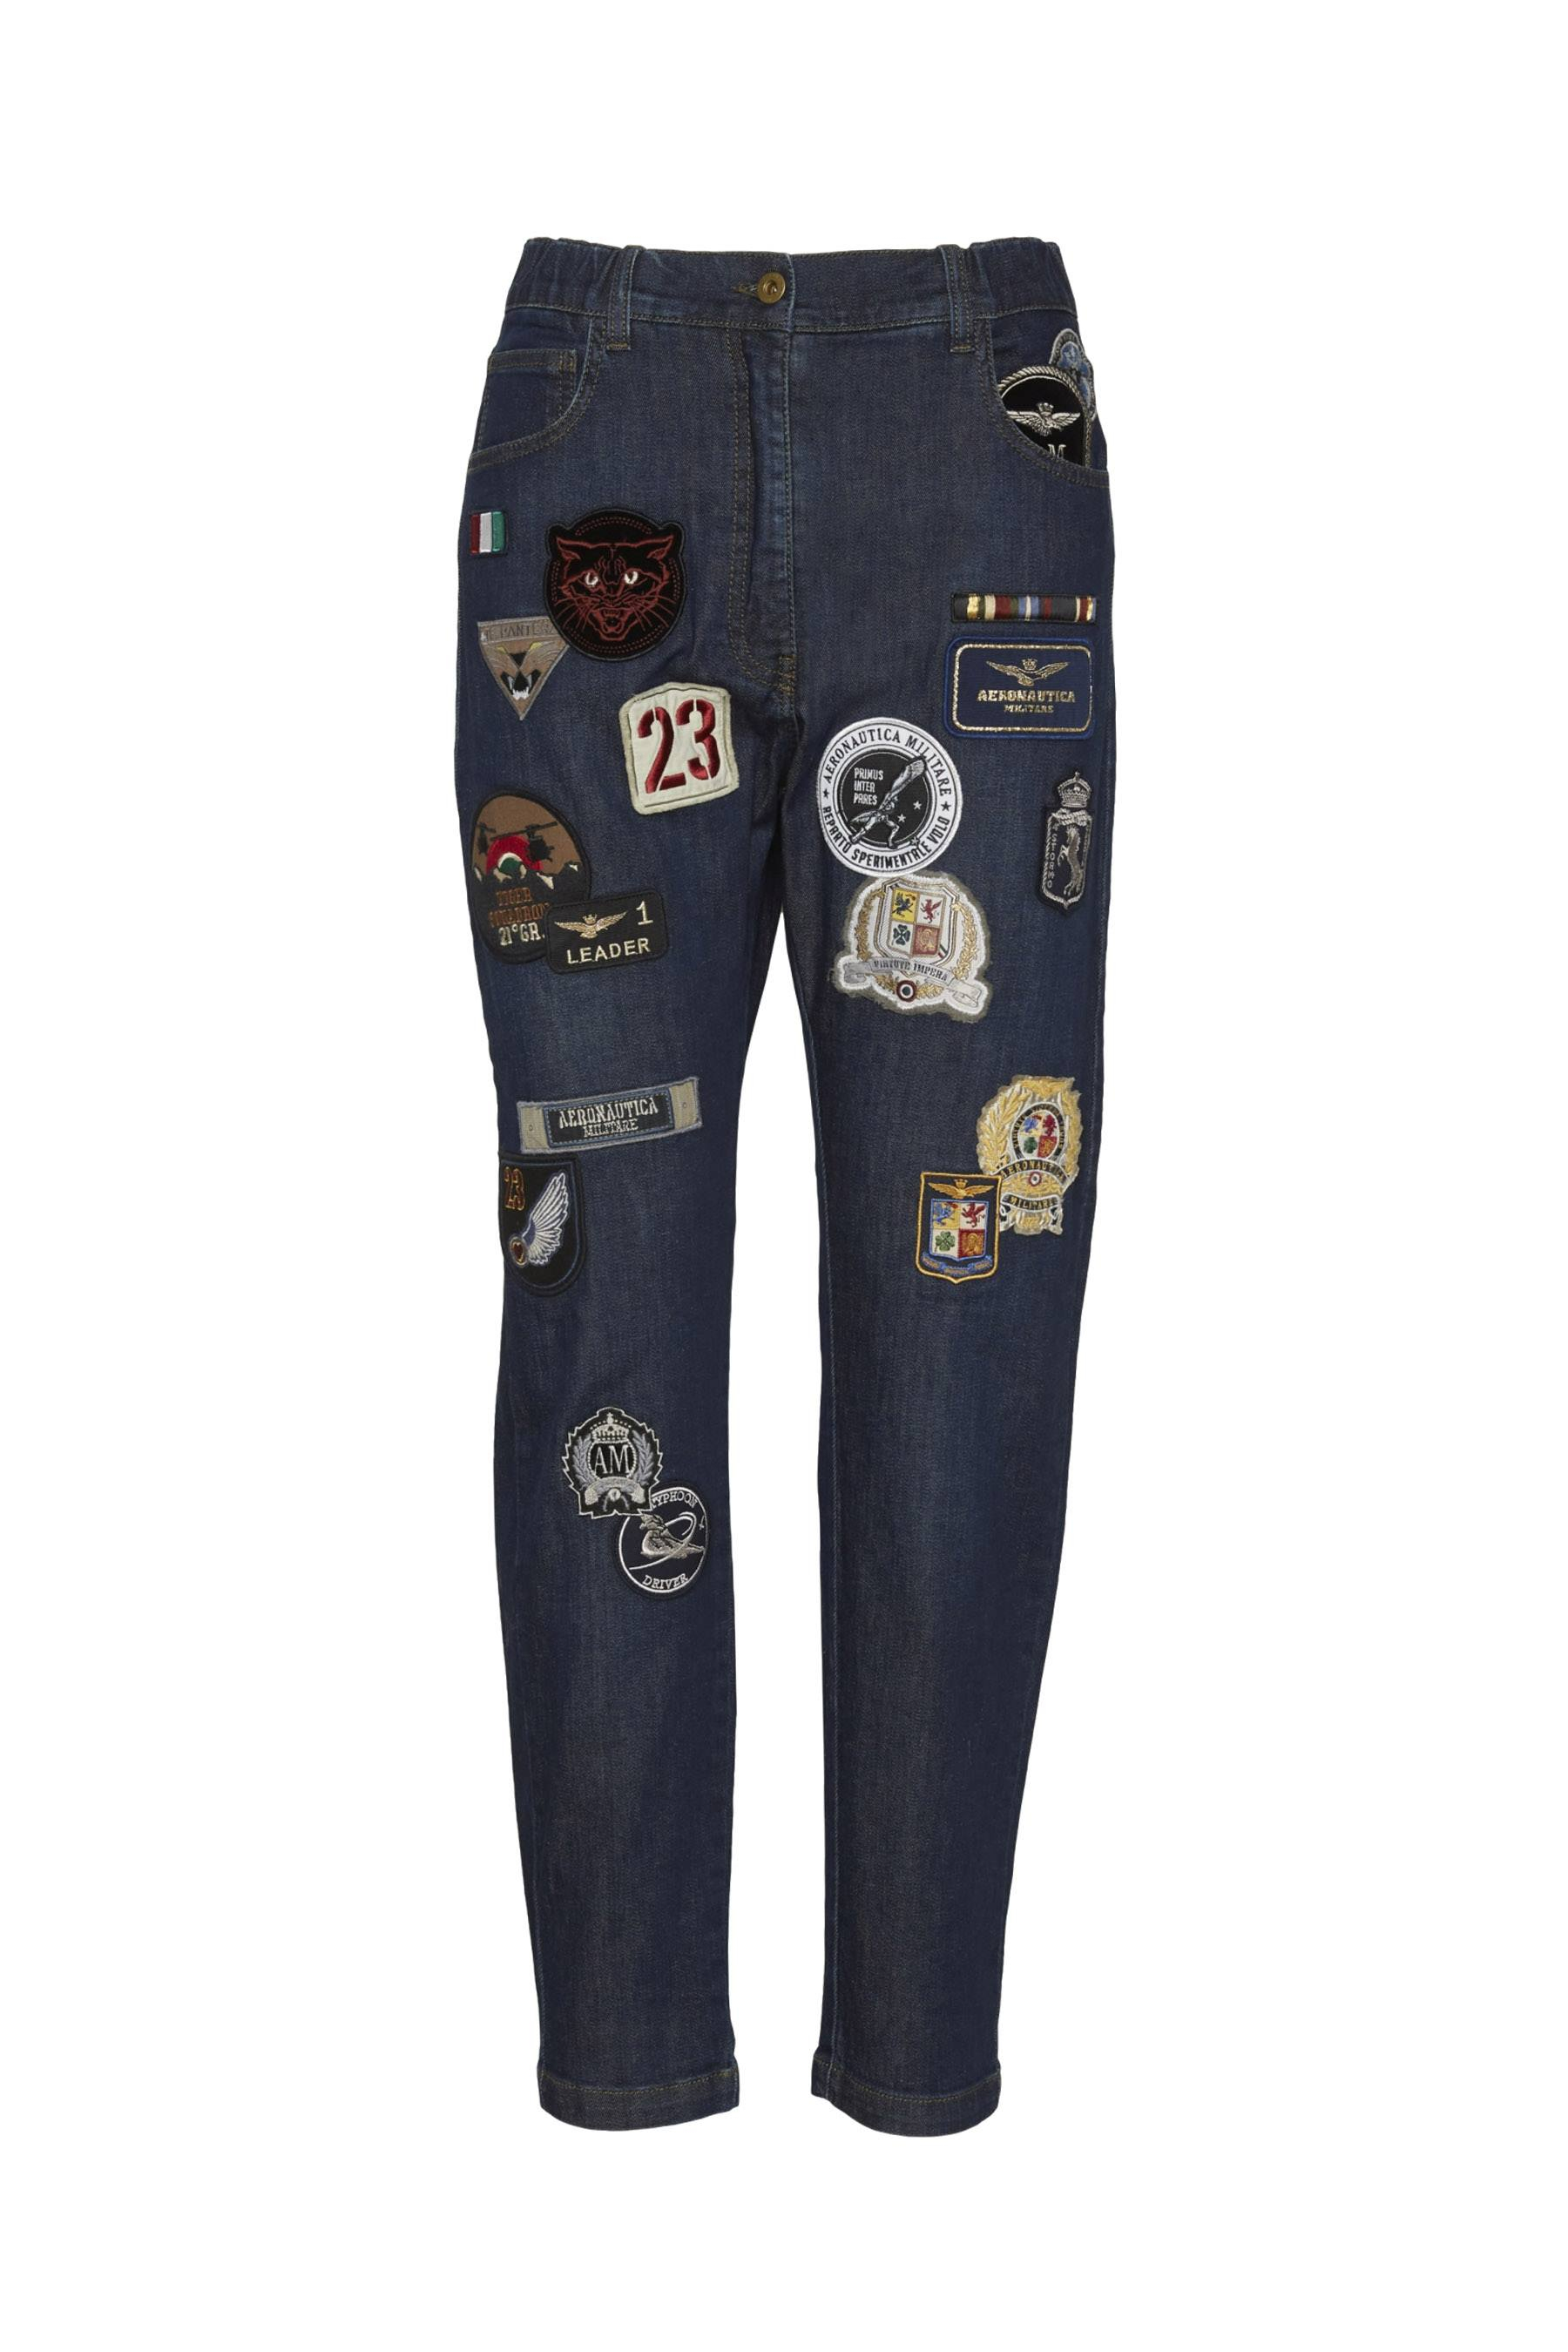 PJ178D - JEANS PATCH 1